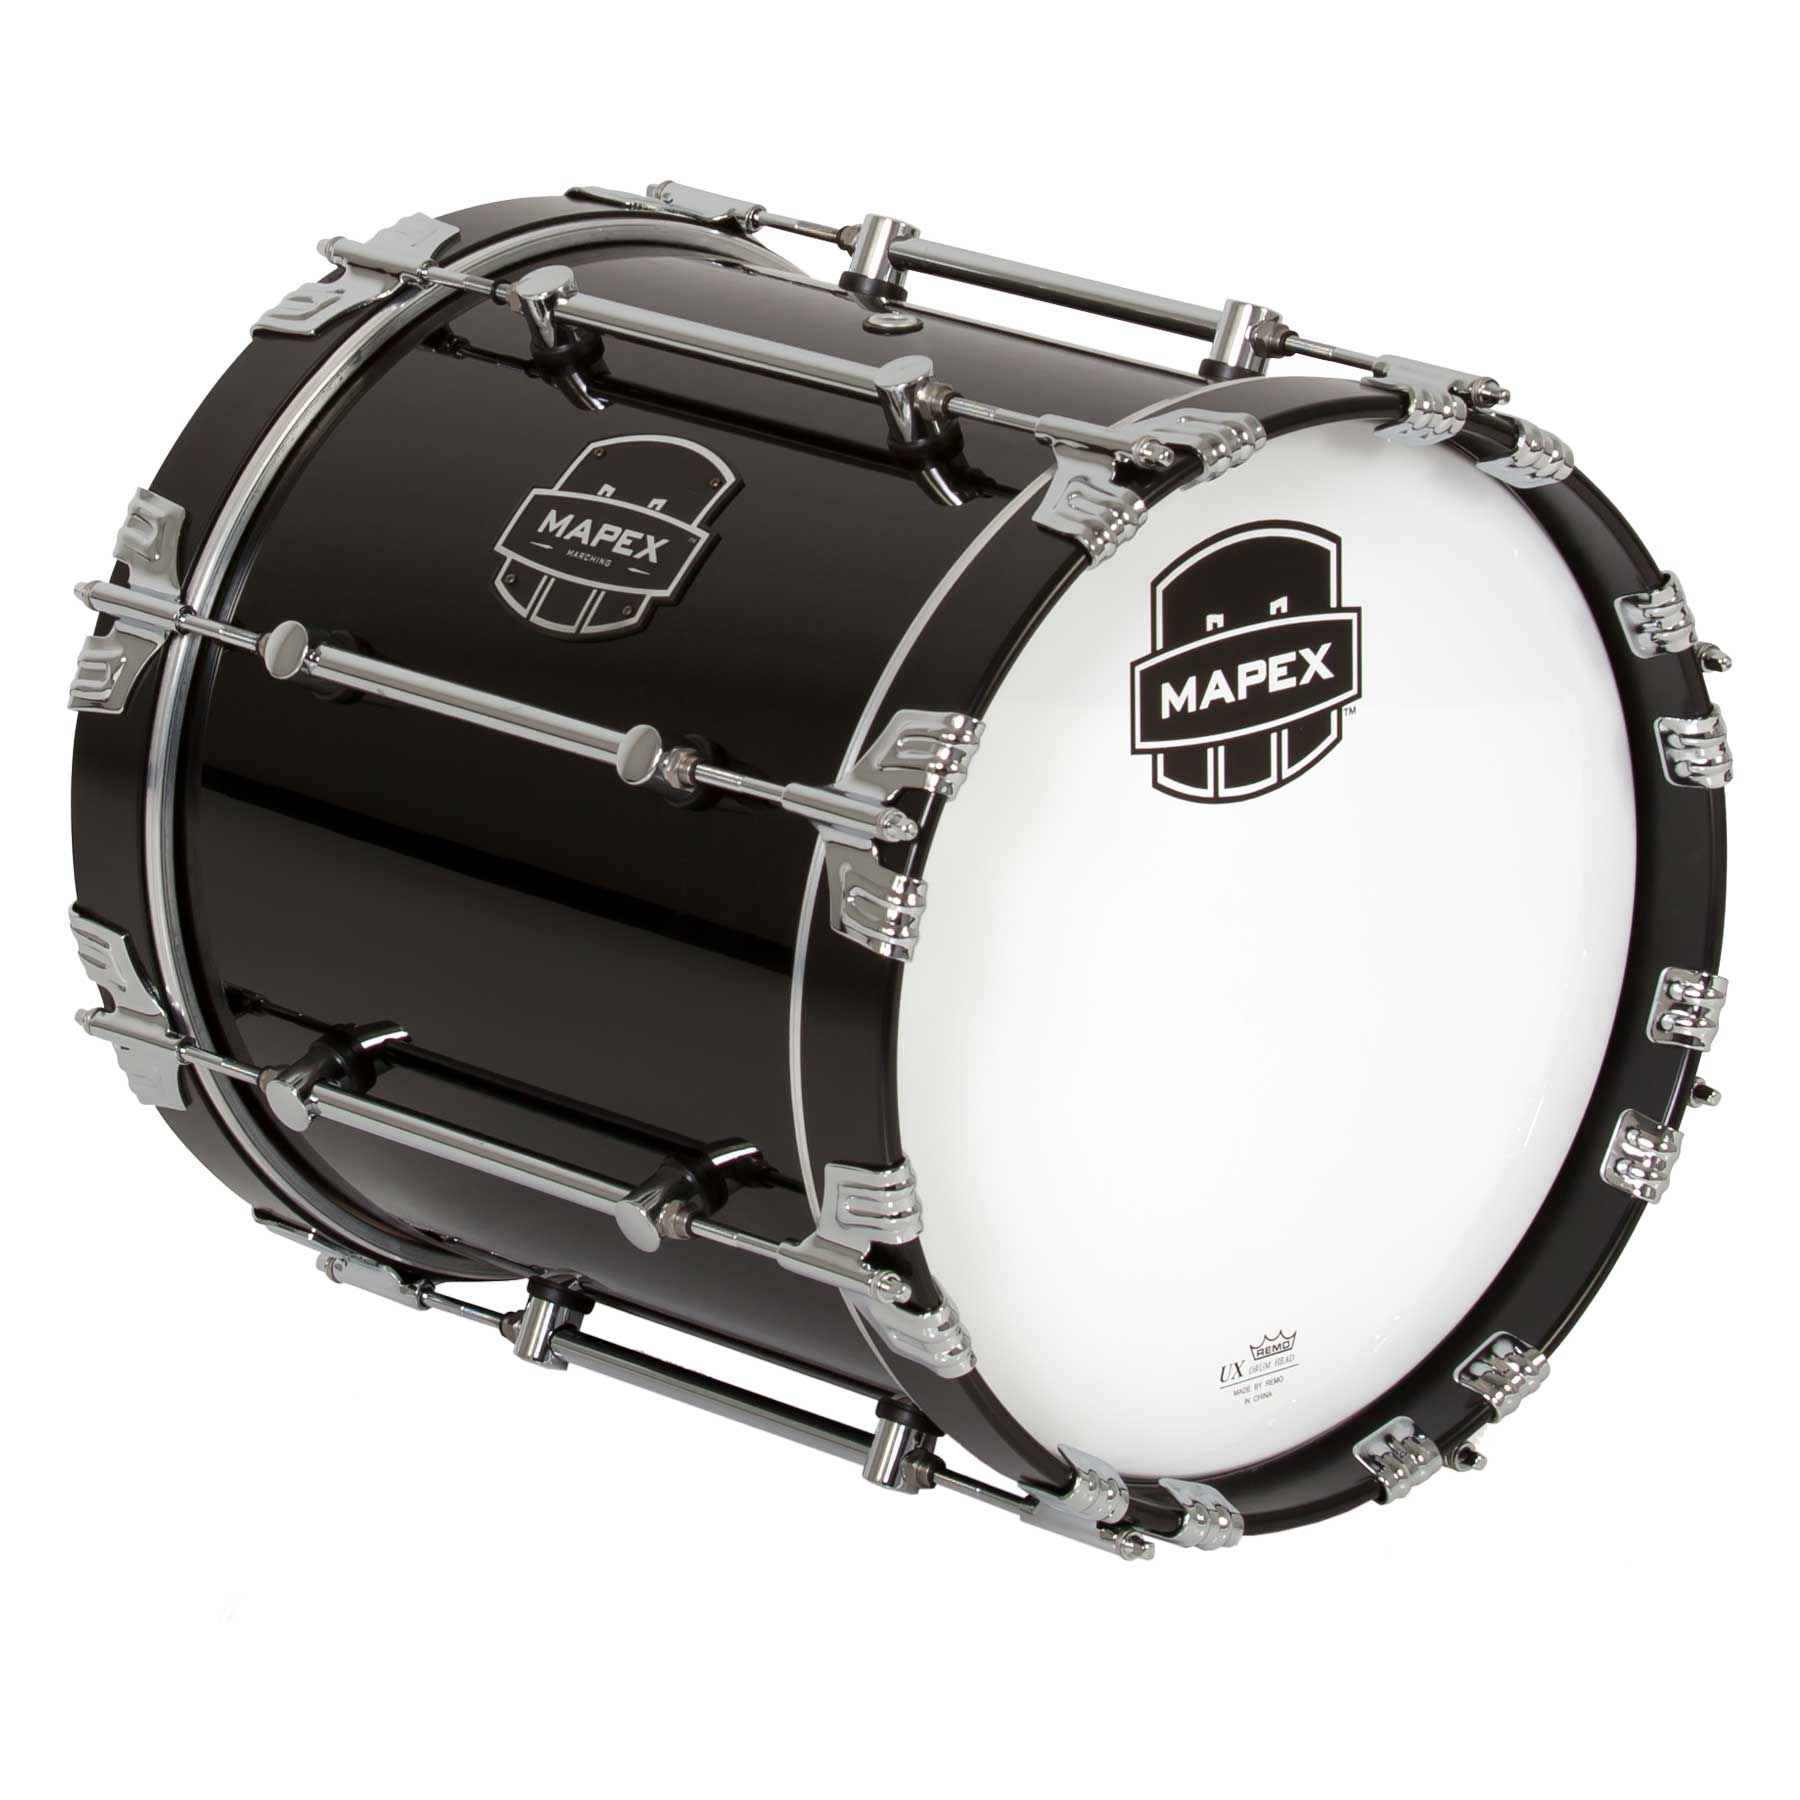 "Mapex 14"" Quantum Marching Bass Drum in Gloss Black"